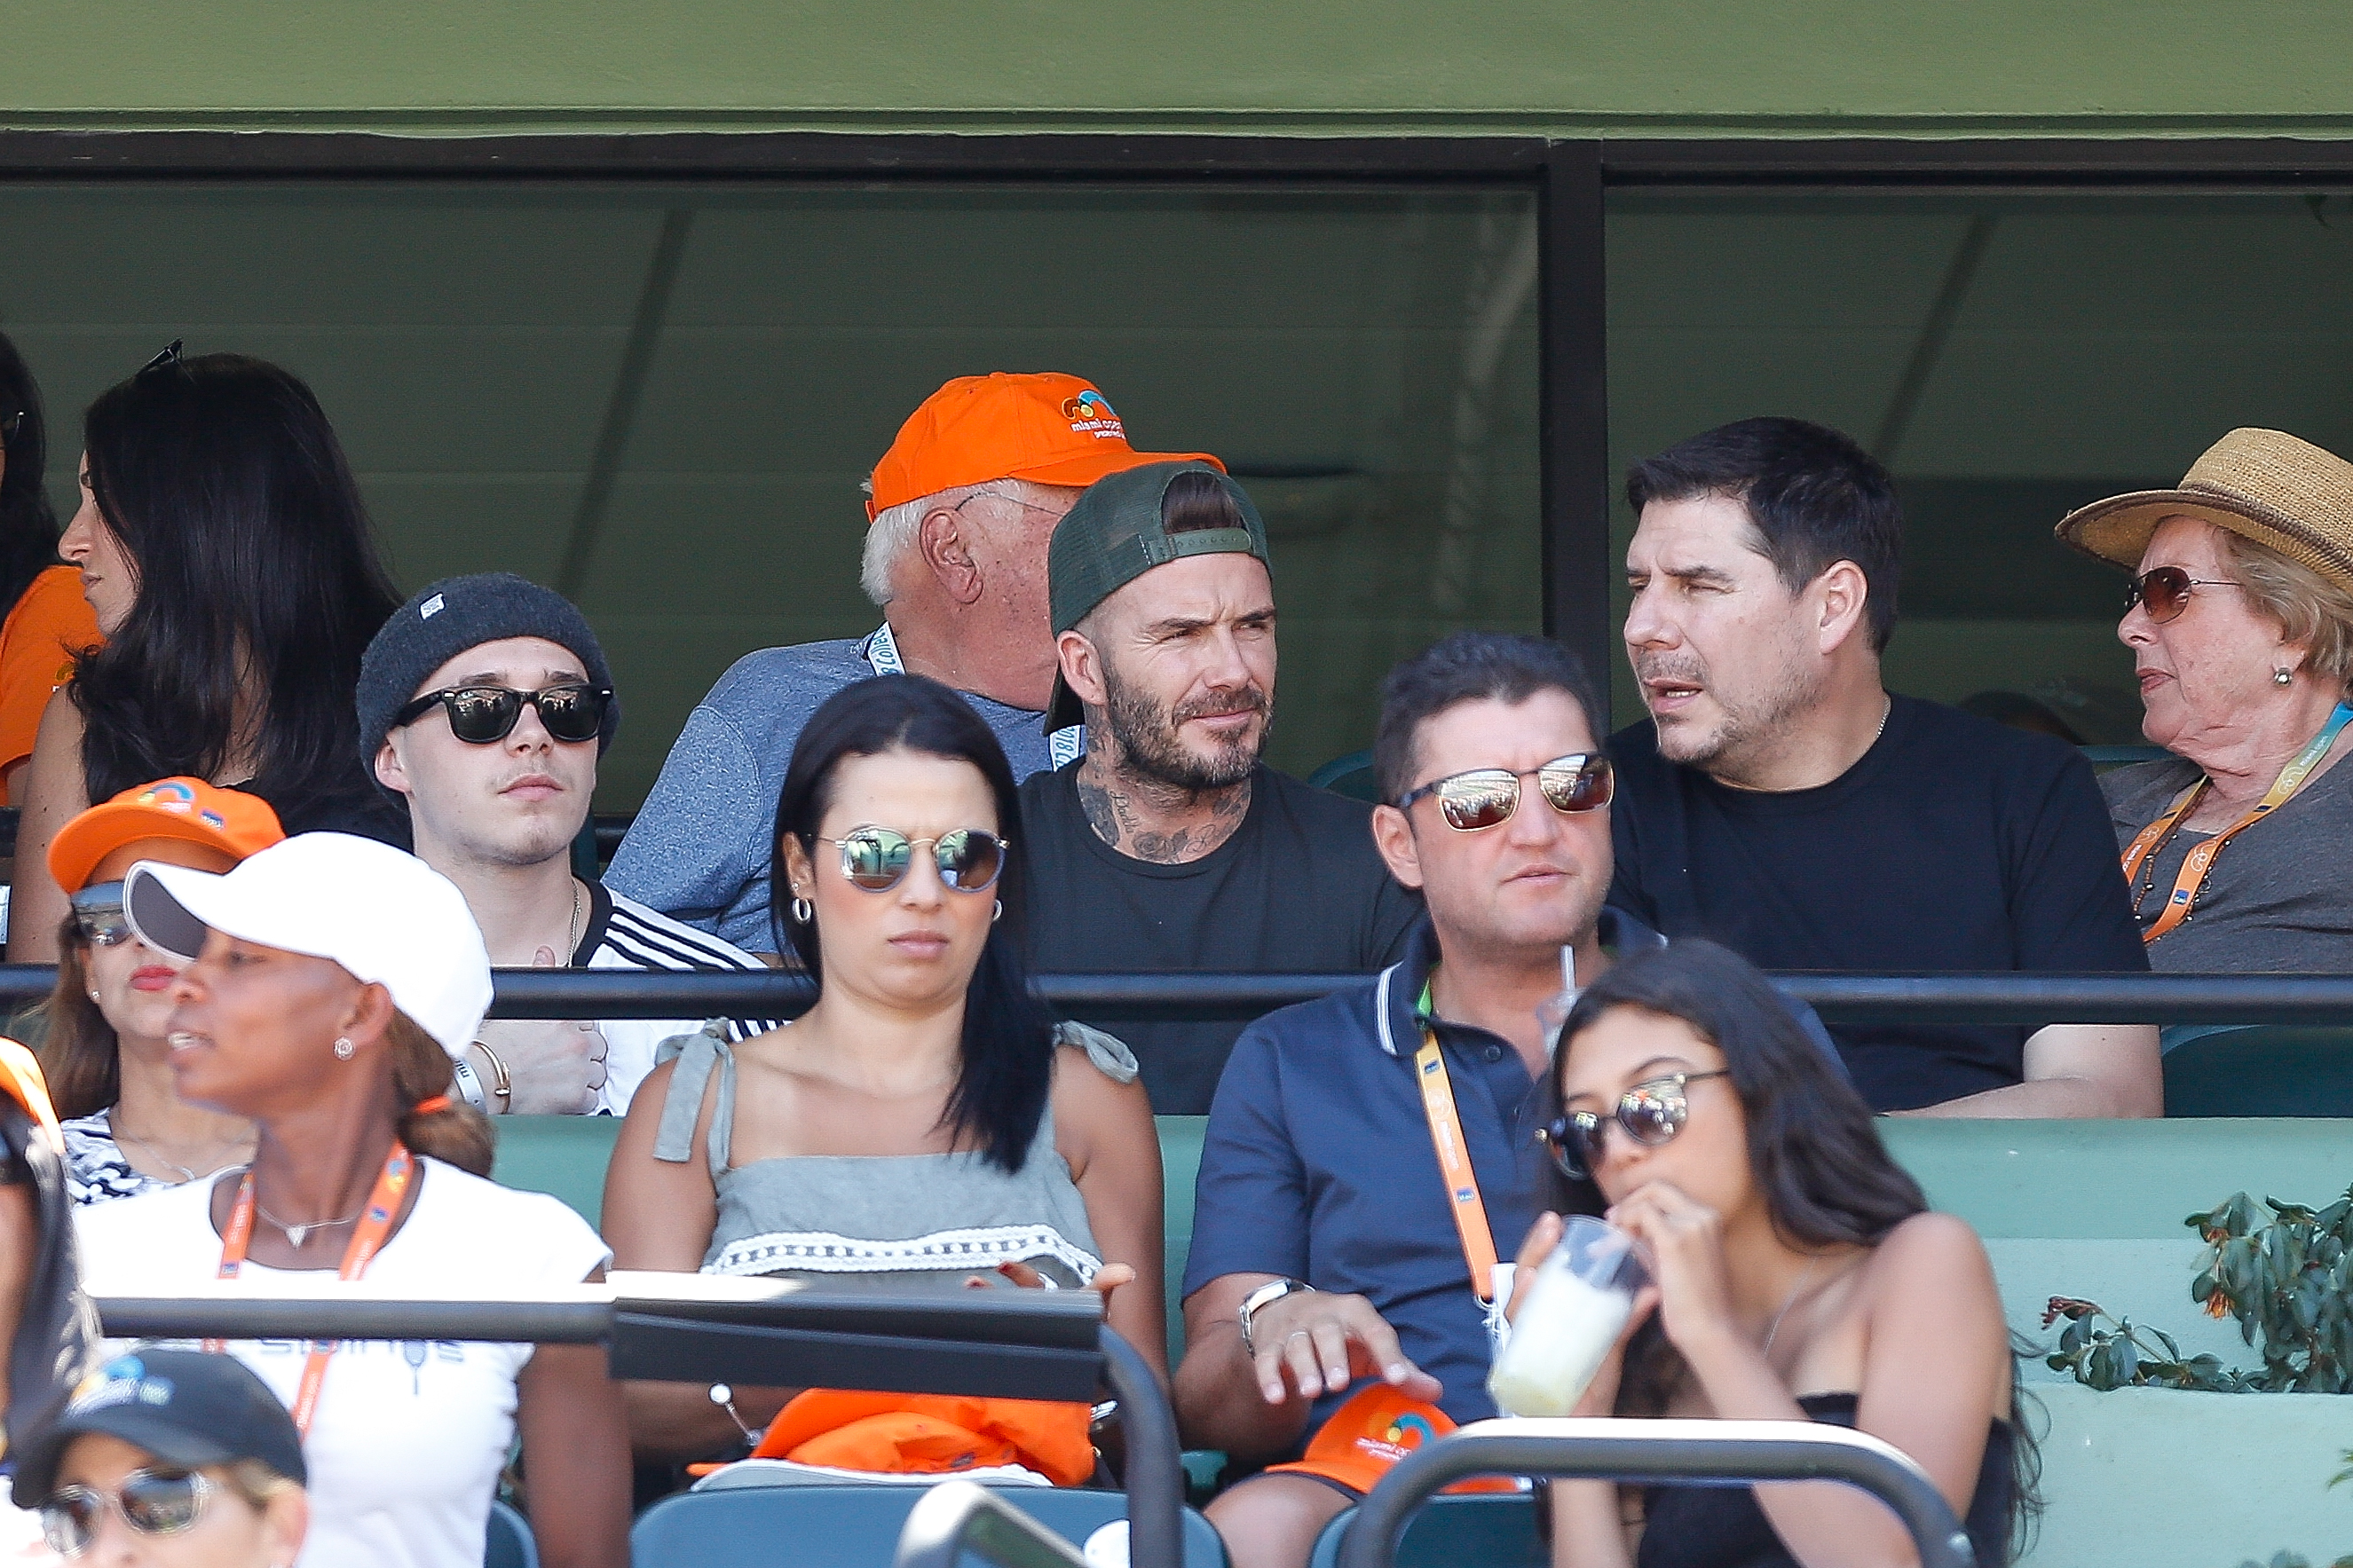 Brooklyn Beckham, David Beckham and Marcelo Claure, CEO of Sprint, watch the Miami Open men's final between John Isner of the United States and Alexander Zverev of Germany on Day 14 at Crandon Park Tennis Center in Key Biscayne, Florida, on April 1, 2018.